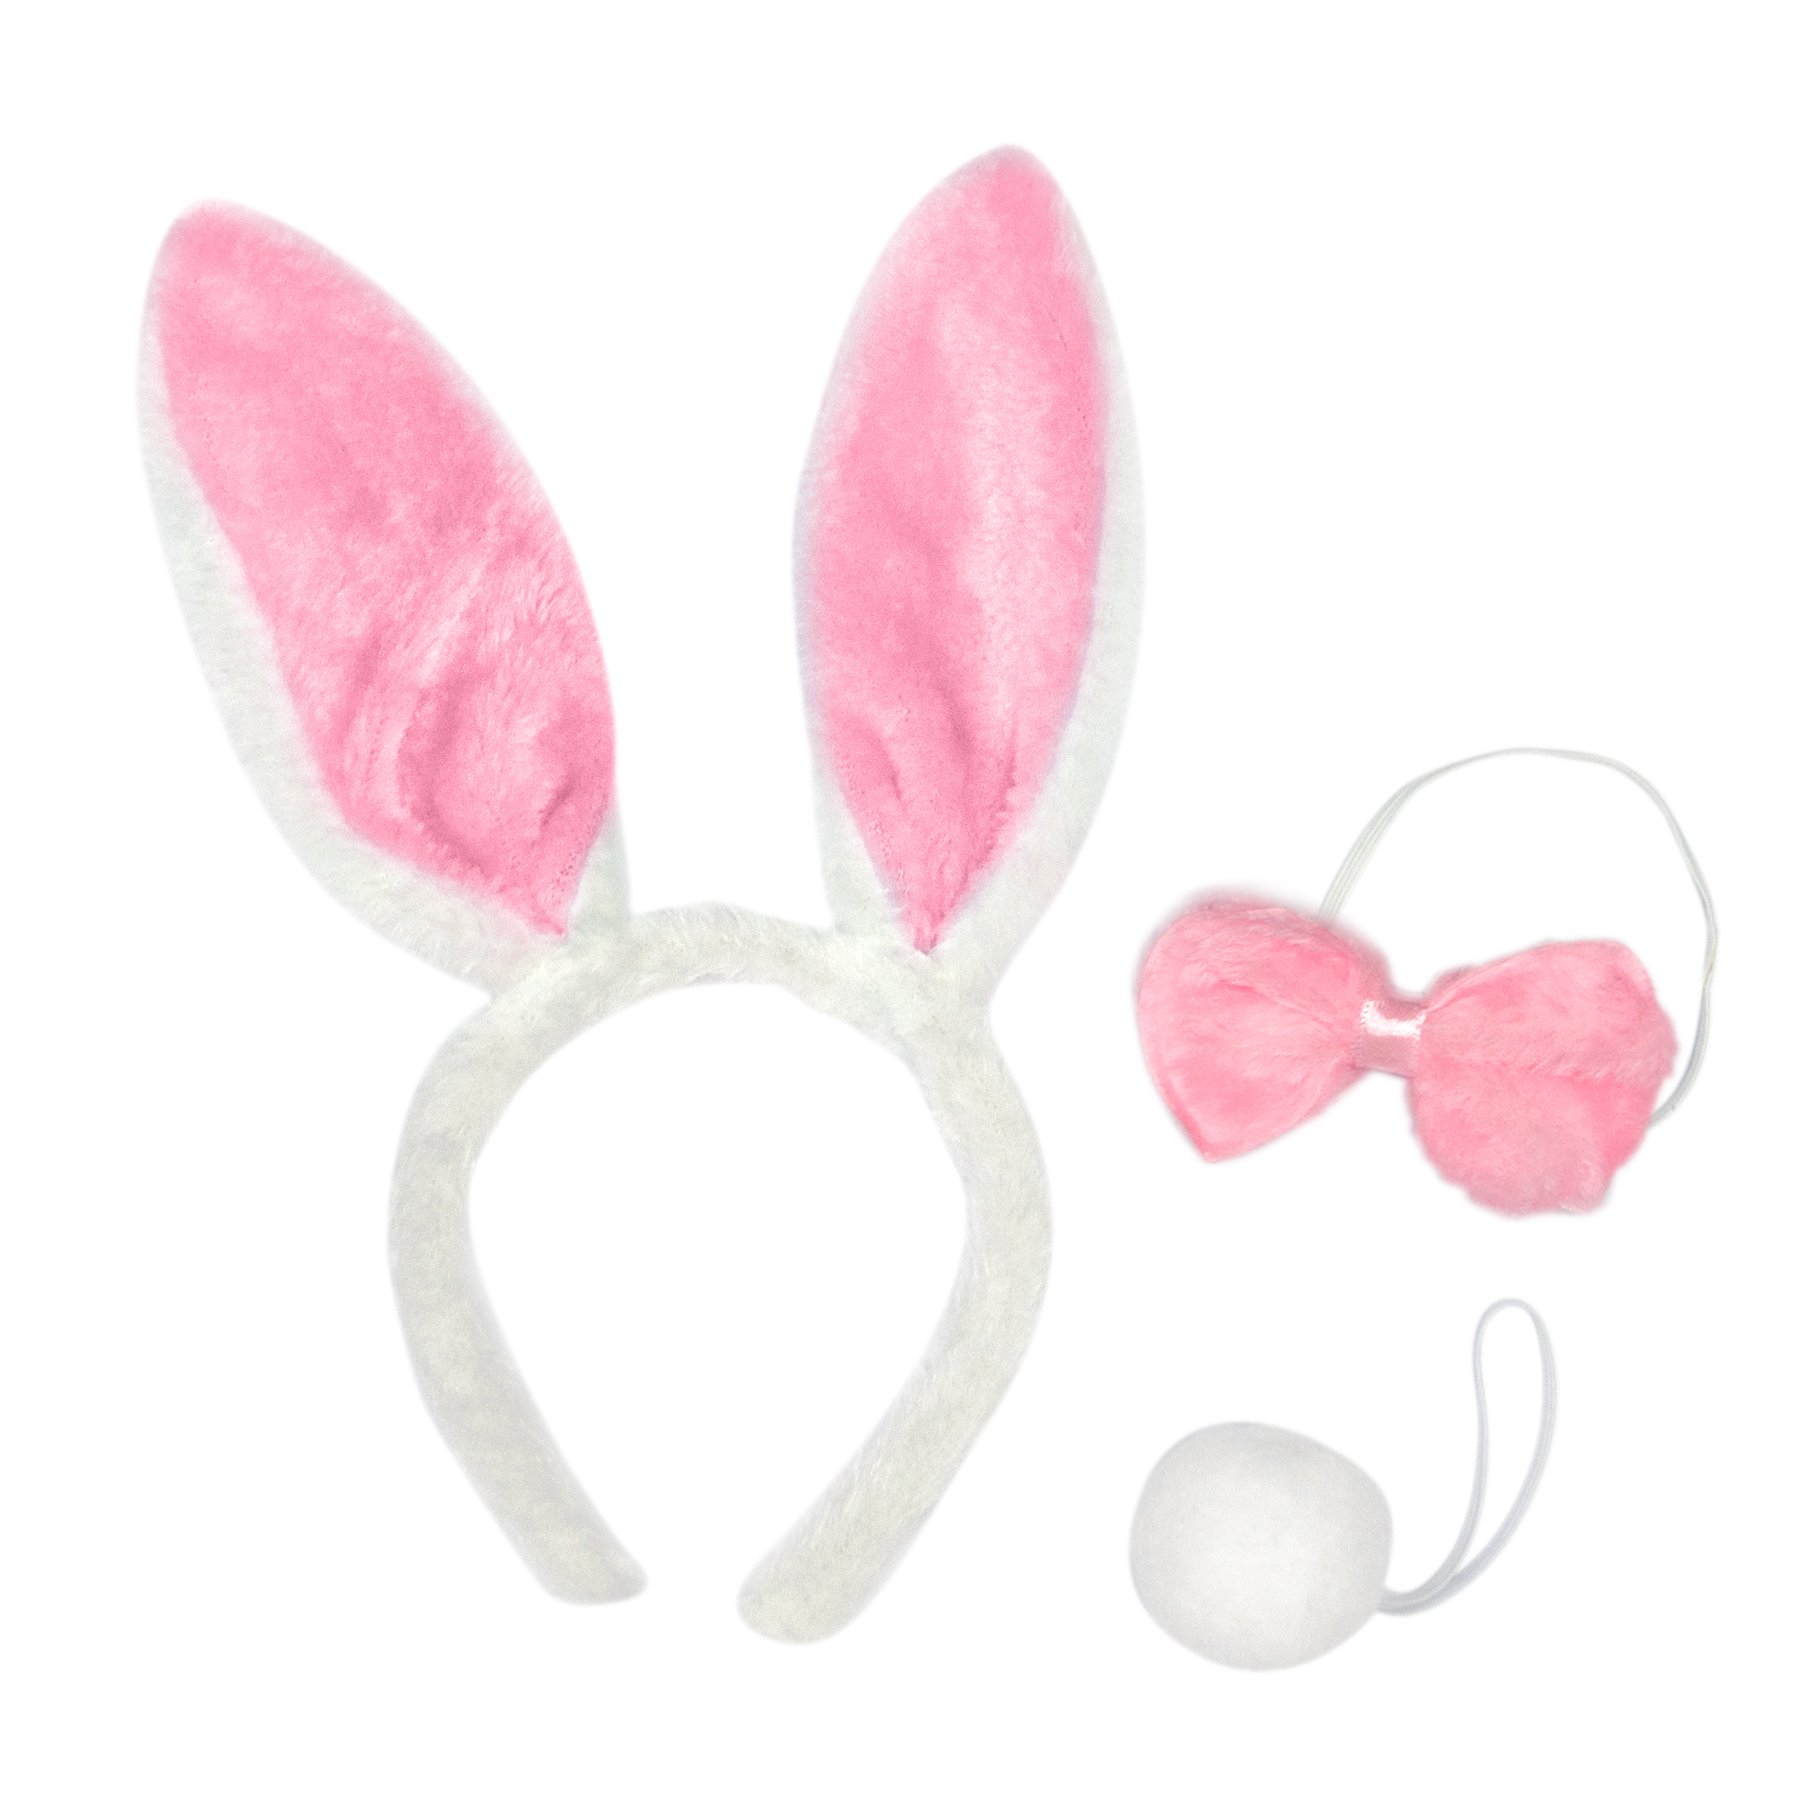 Toptie Wholesale Set of 3 Bunny Ears Headband, Soft Touch Plush Party Accessory-Pink-120Sets by TopTie